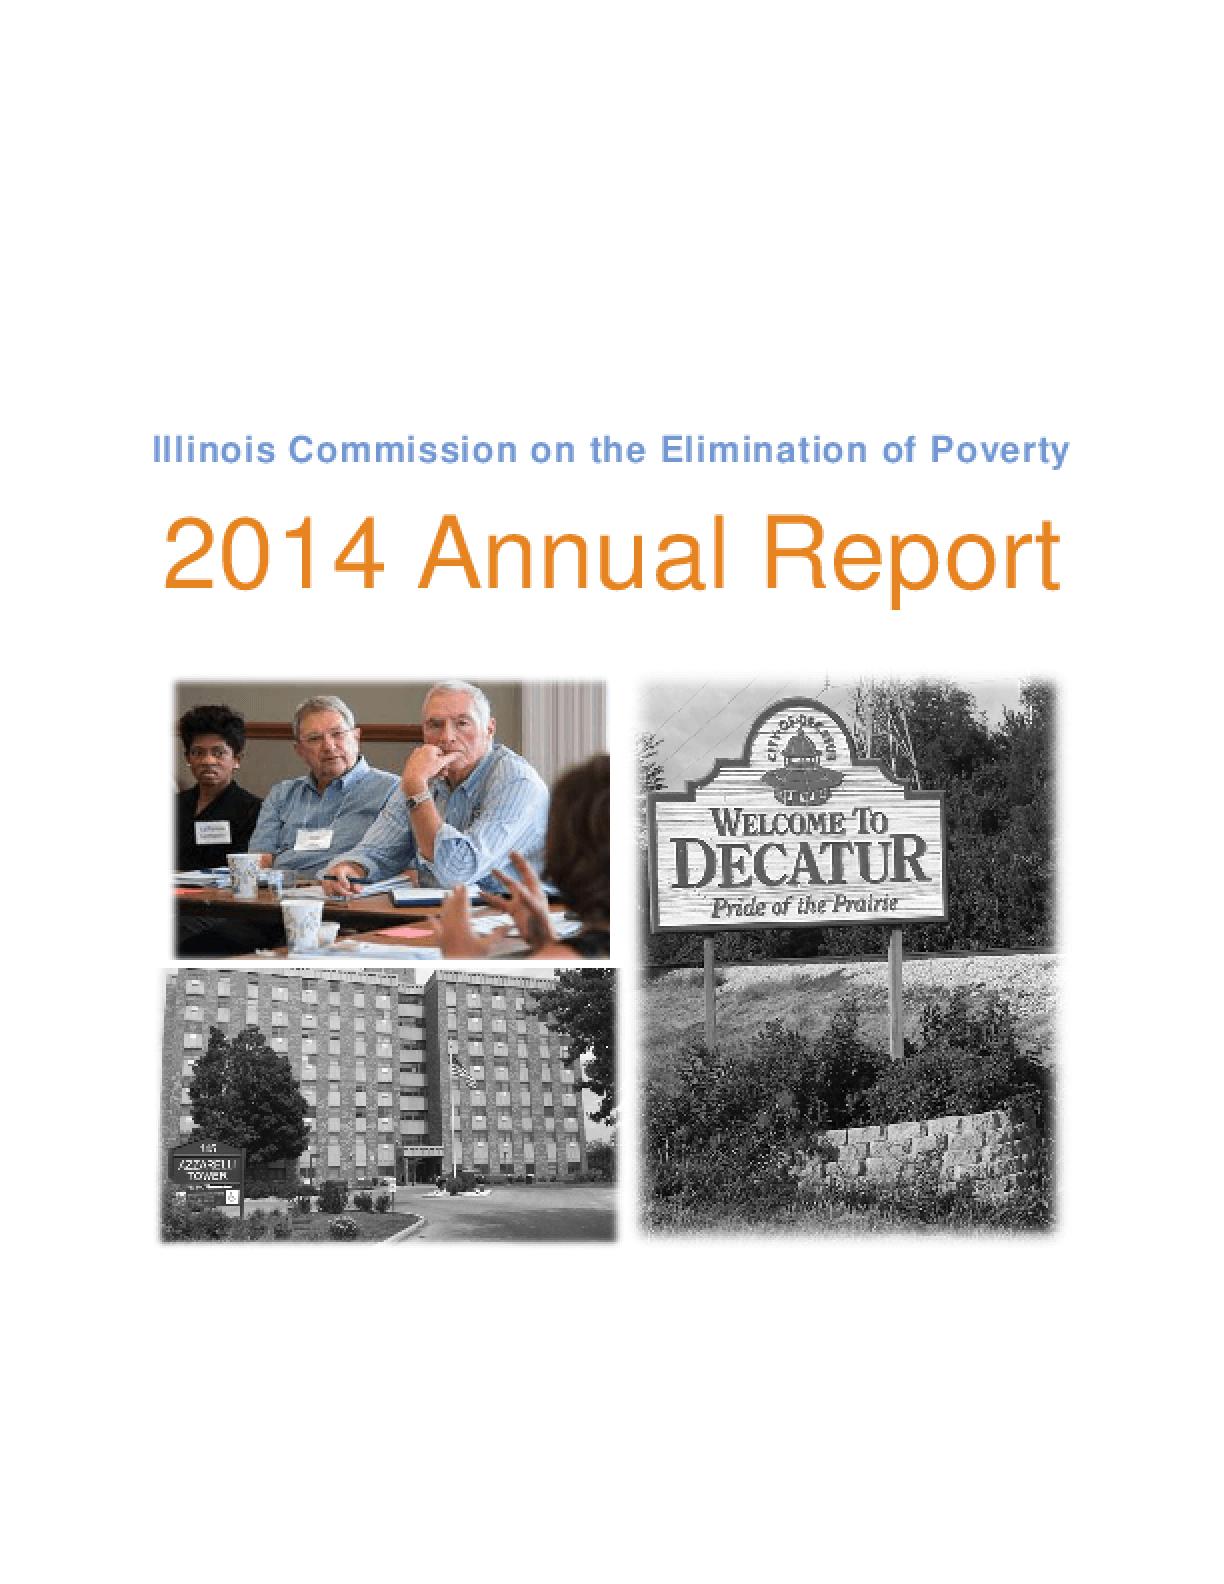 Illinois Commission on the Elimination of Poverty Annual Report 2014